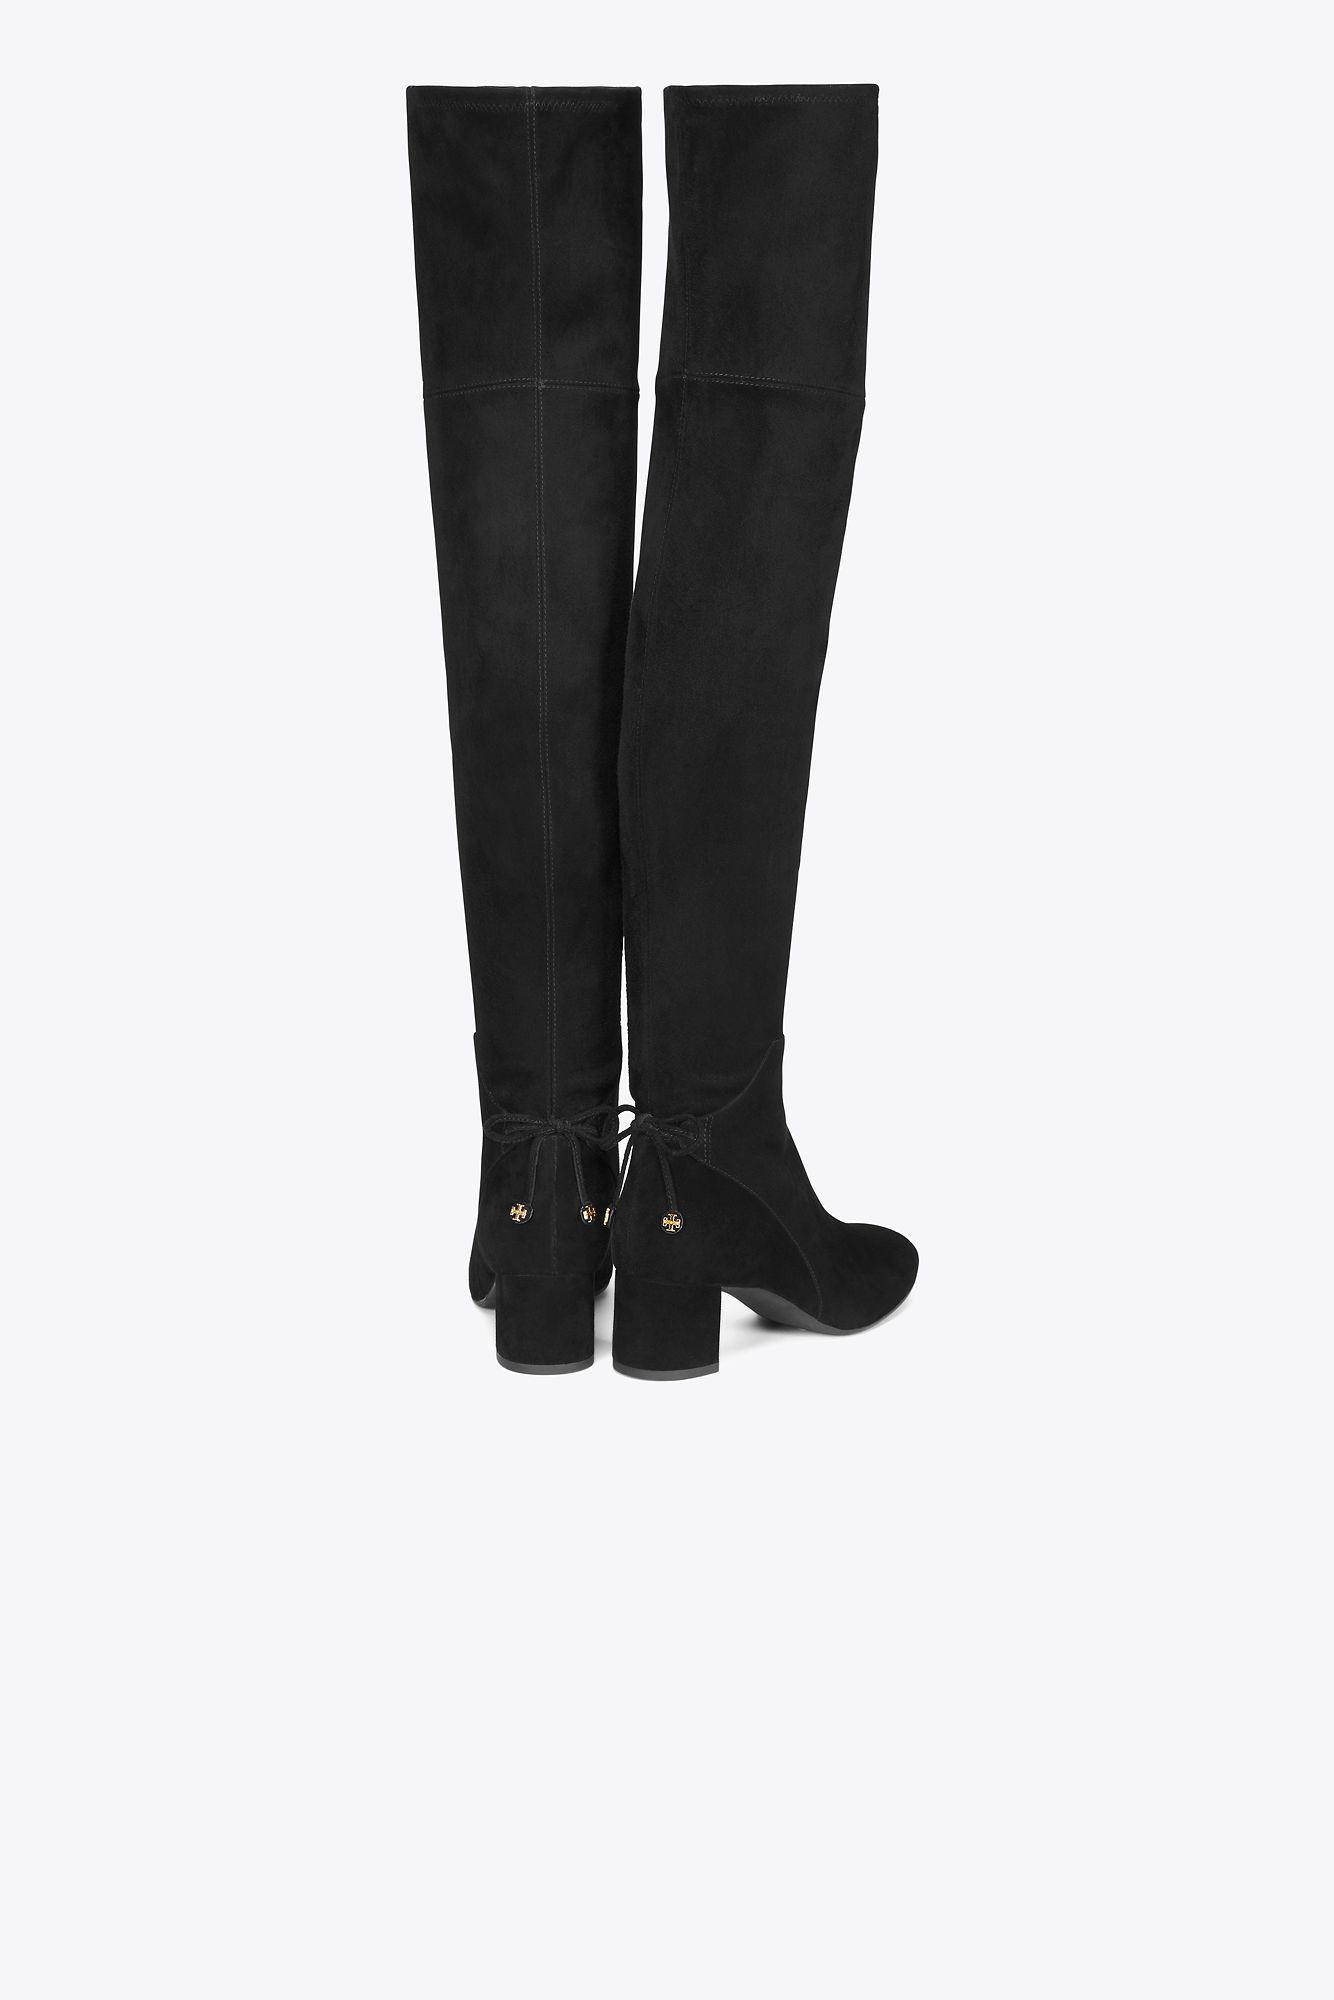 e01b28a69ffe Lyst - Tory Burch Laila 45mm Over-the-knee Boots in Black